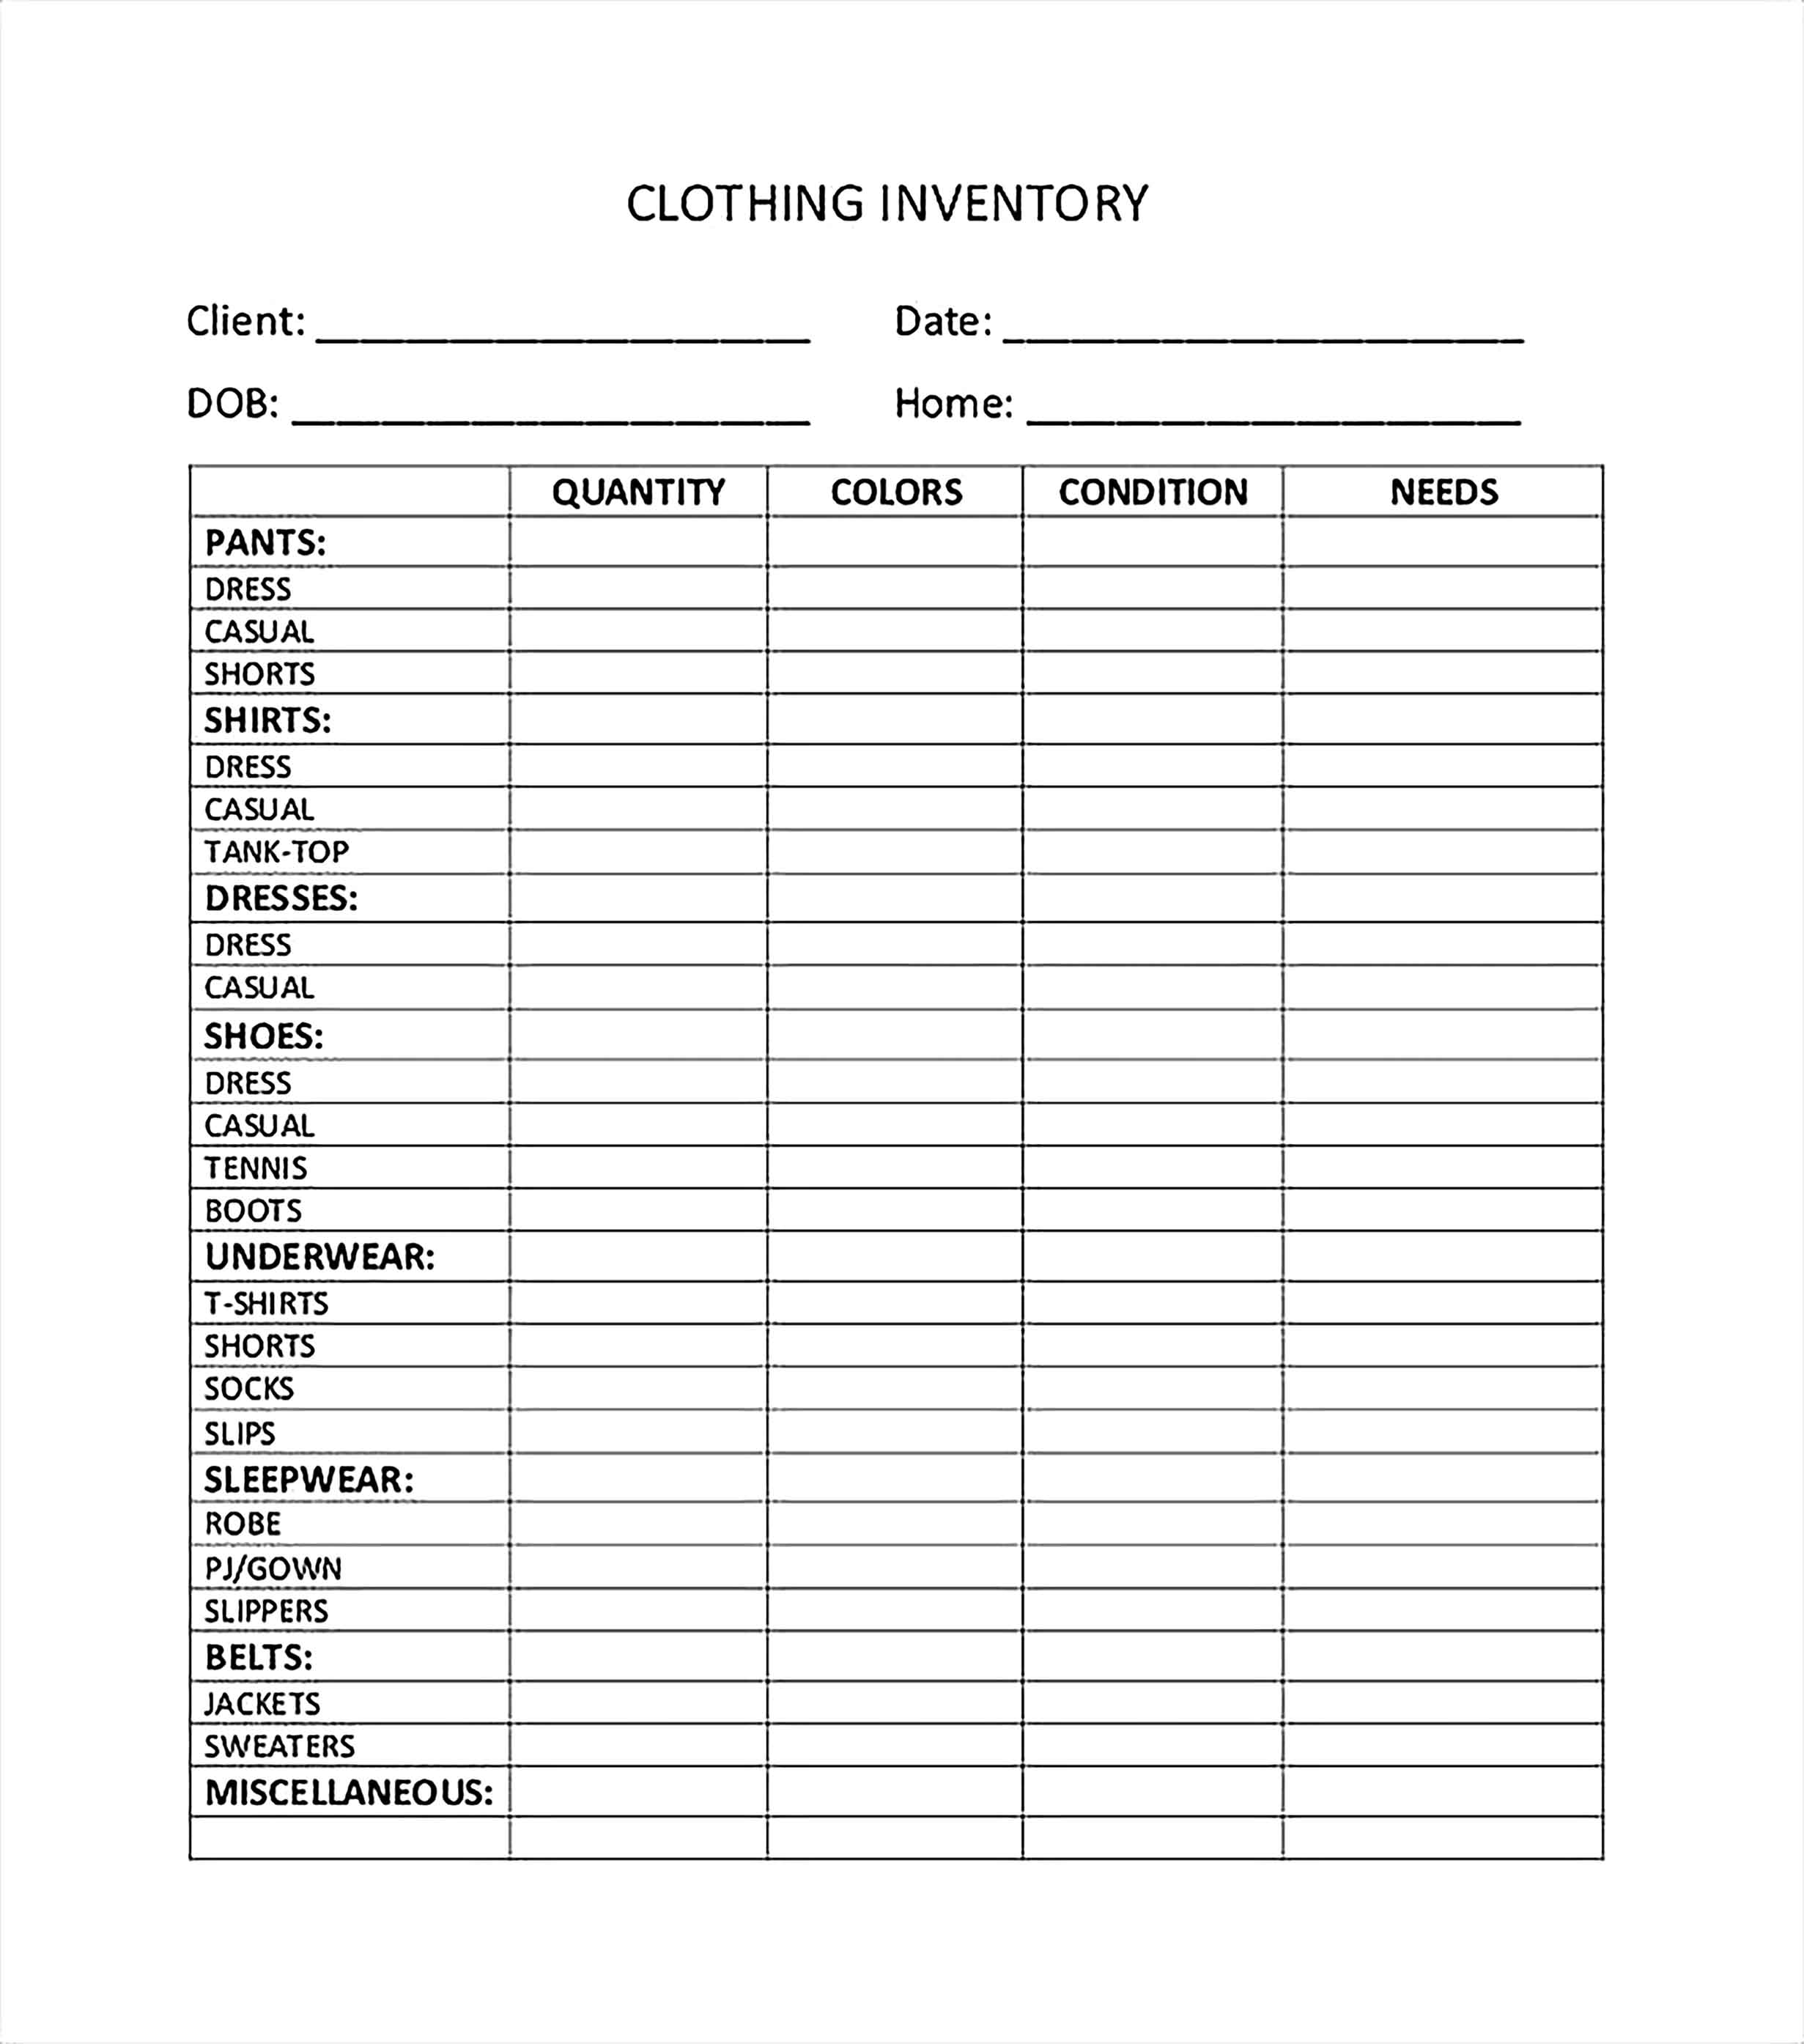 Clothing Inventory Spreadsheet